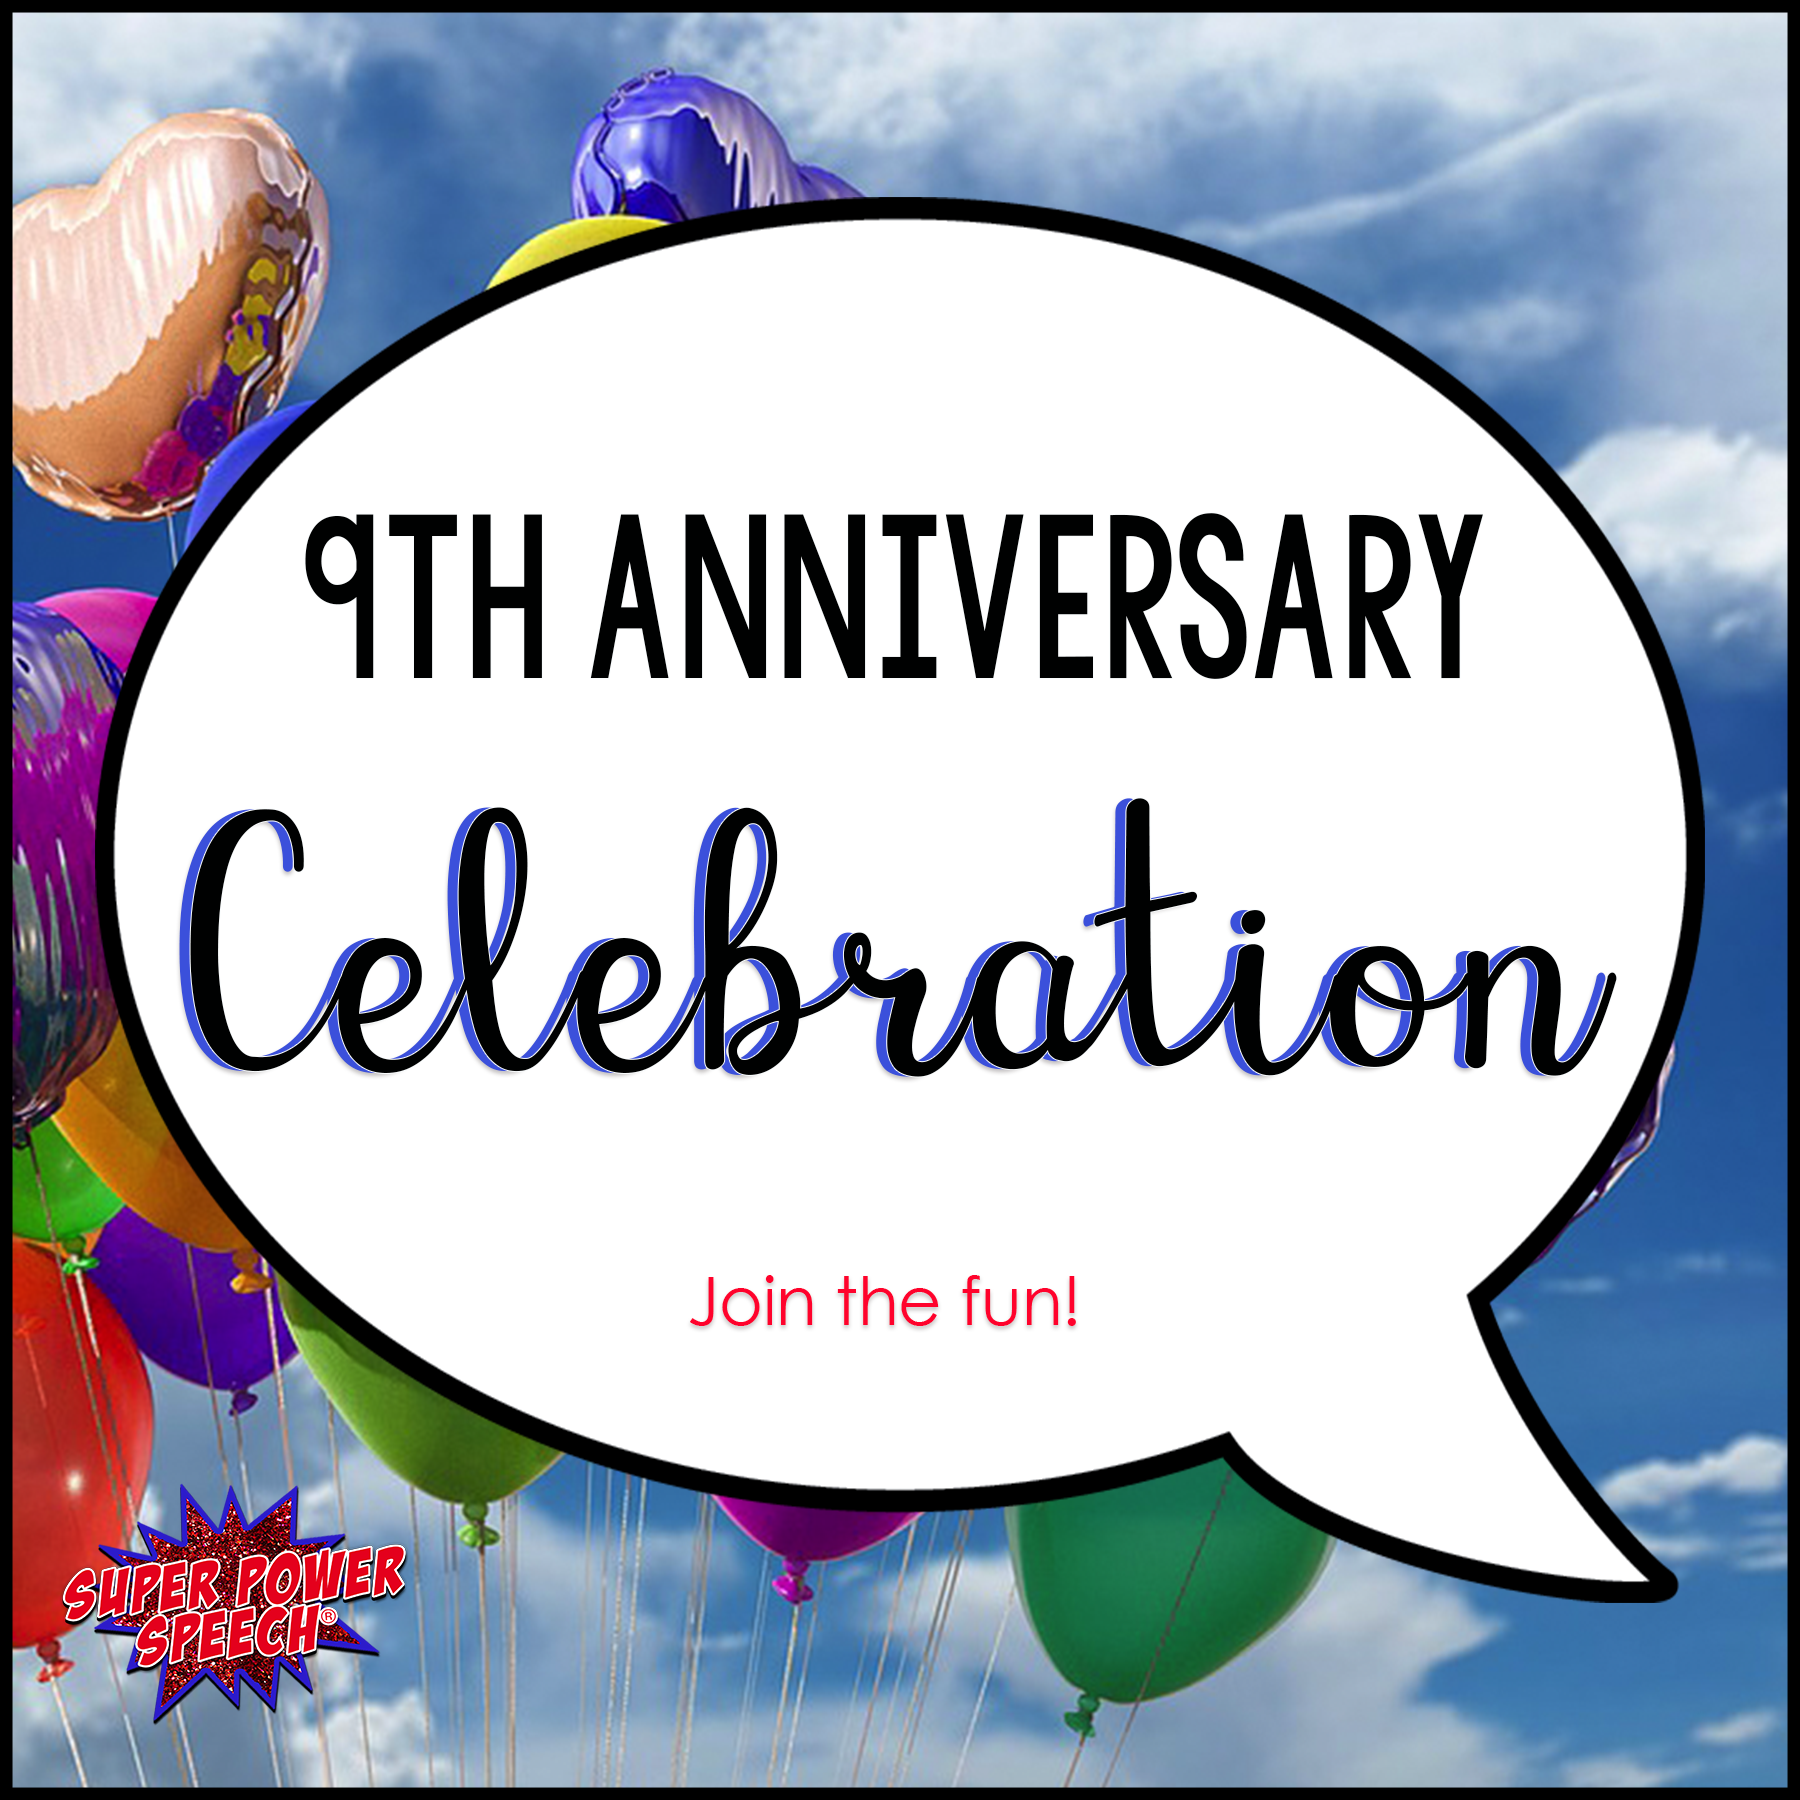 Join Super Power Speech for its 9th anniversary celebration!